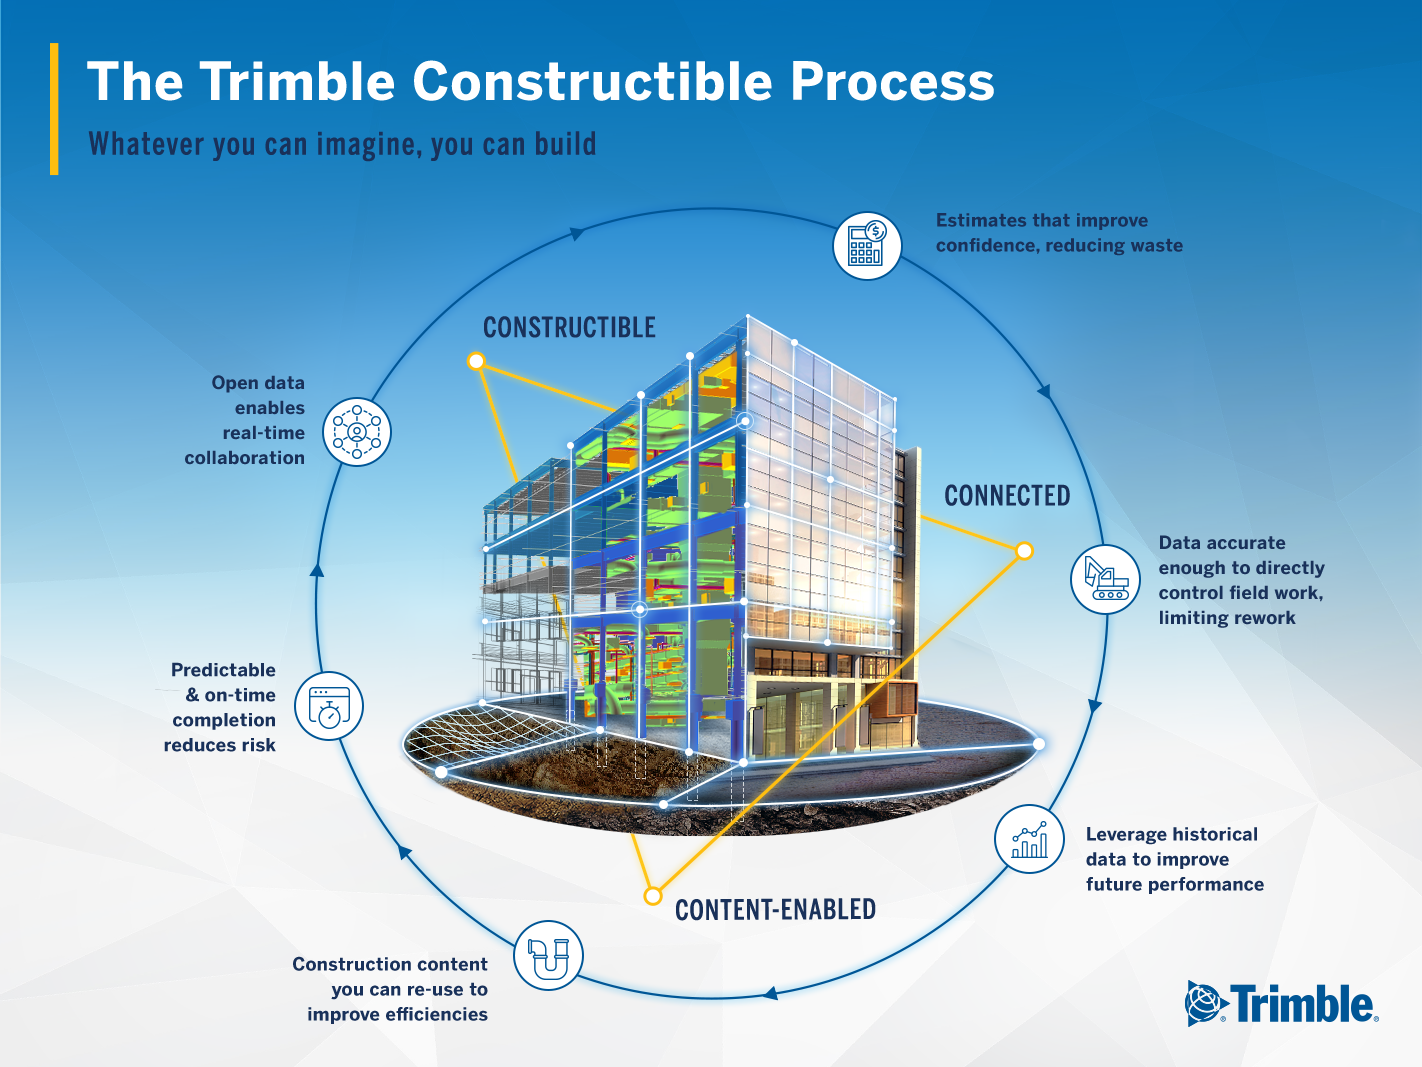 How the constructible process improves collaboration through data sharing in every phase of the construction lifecycle